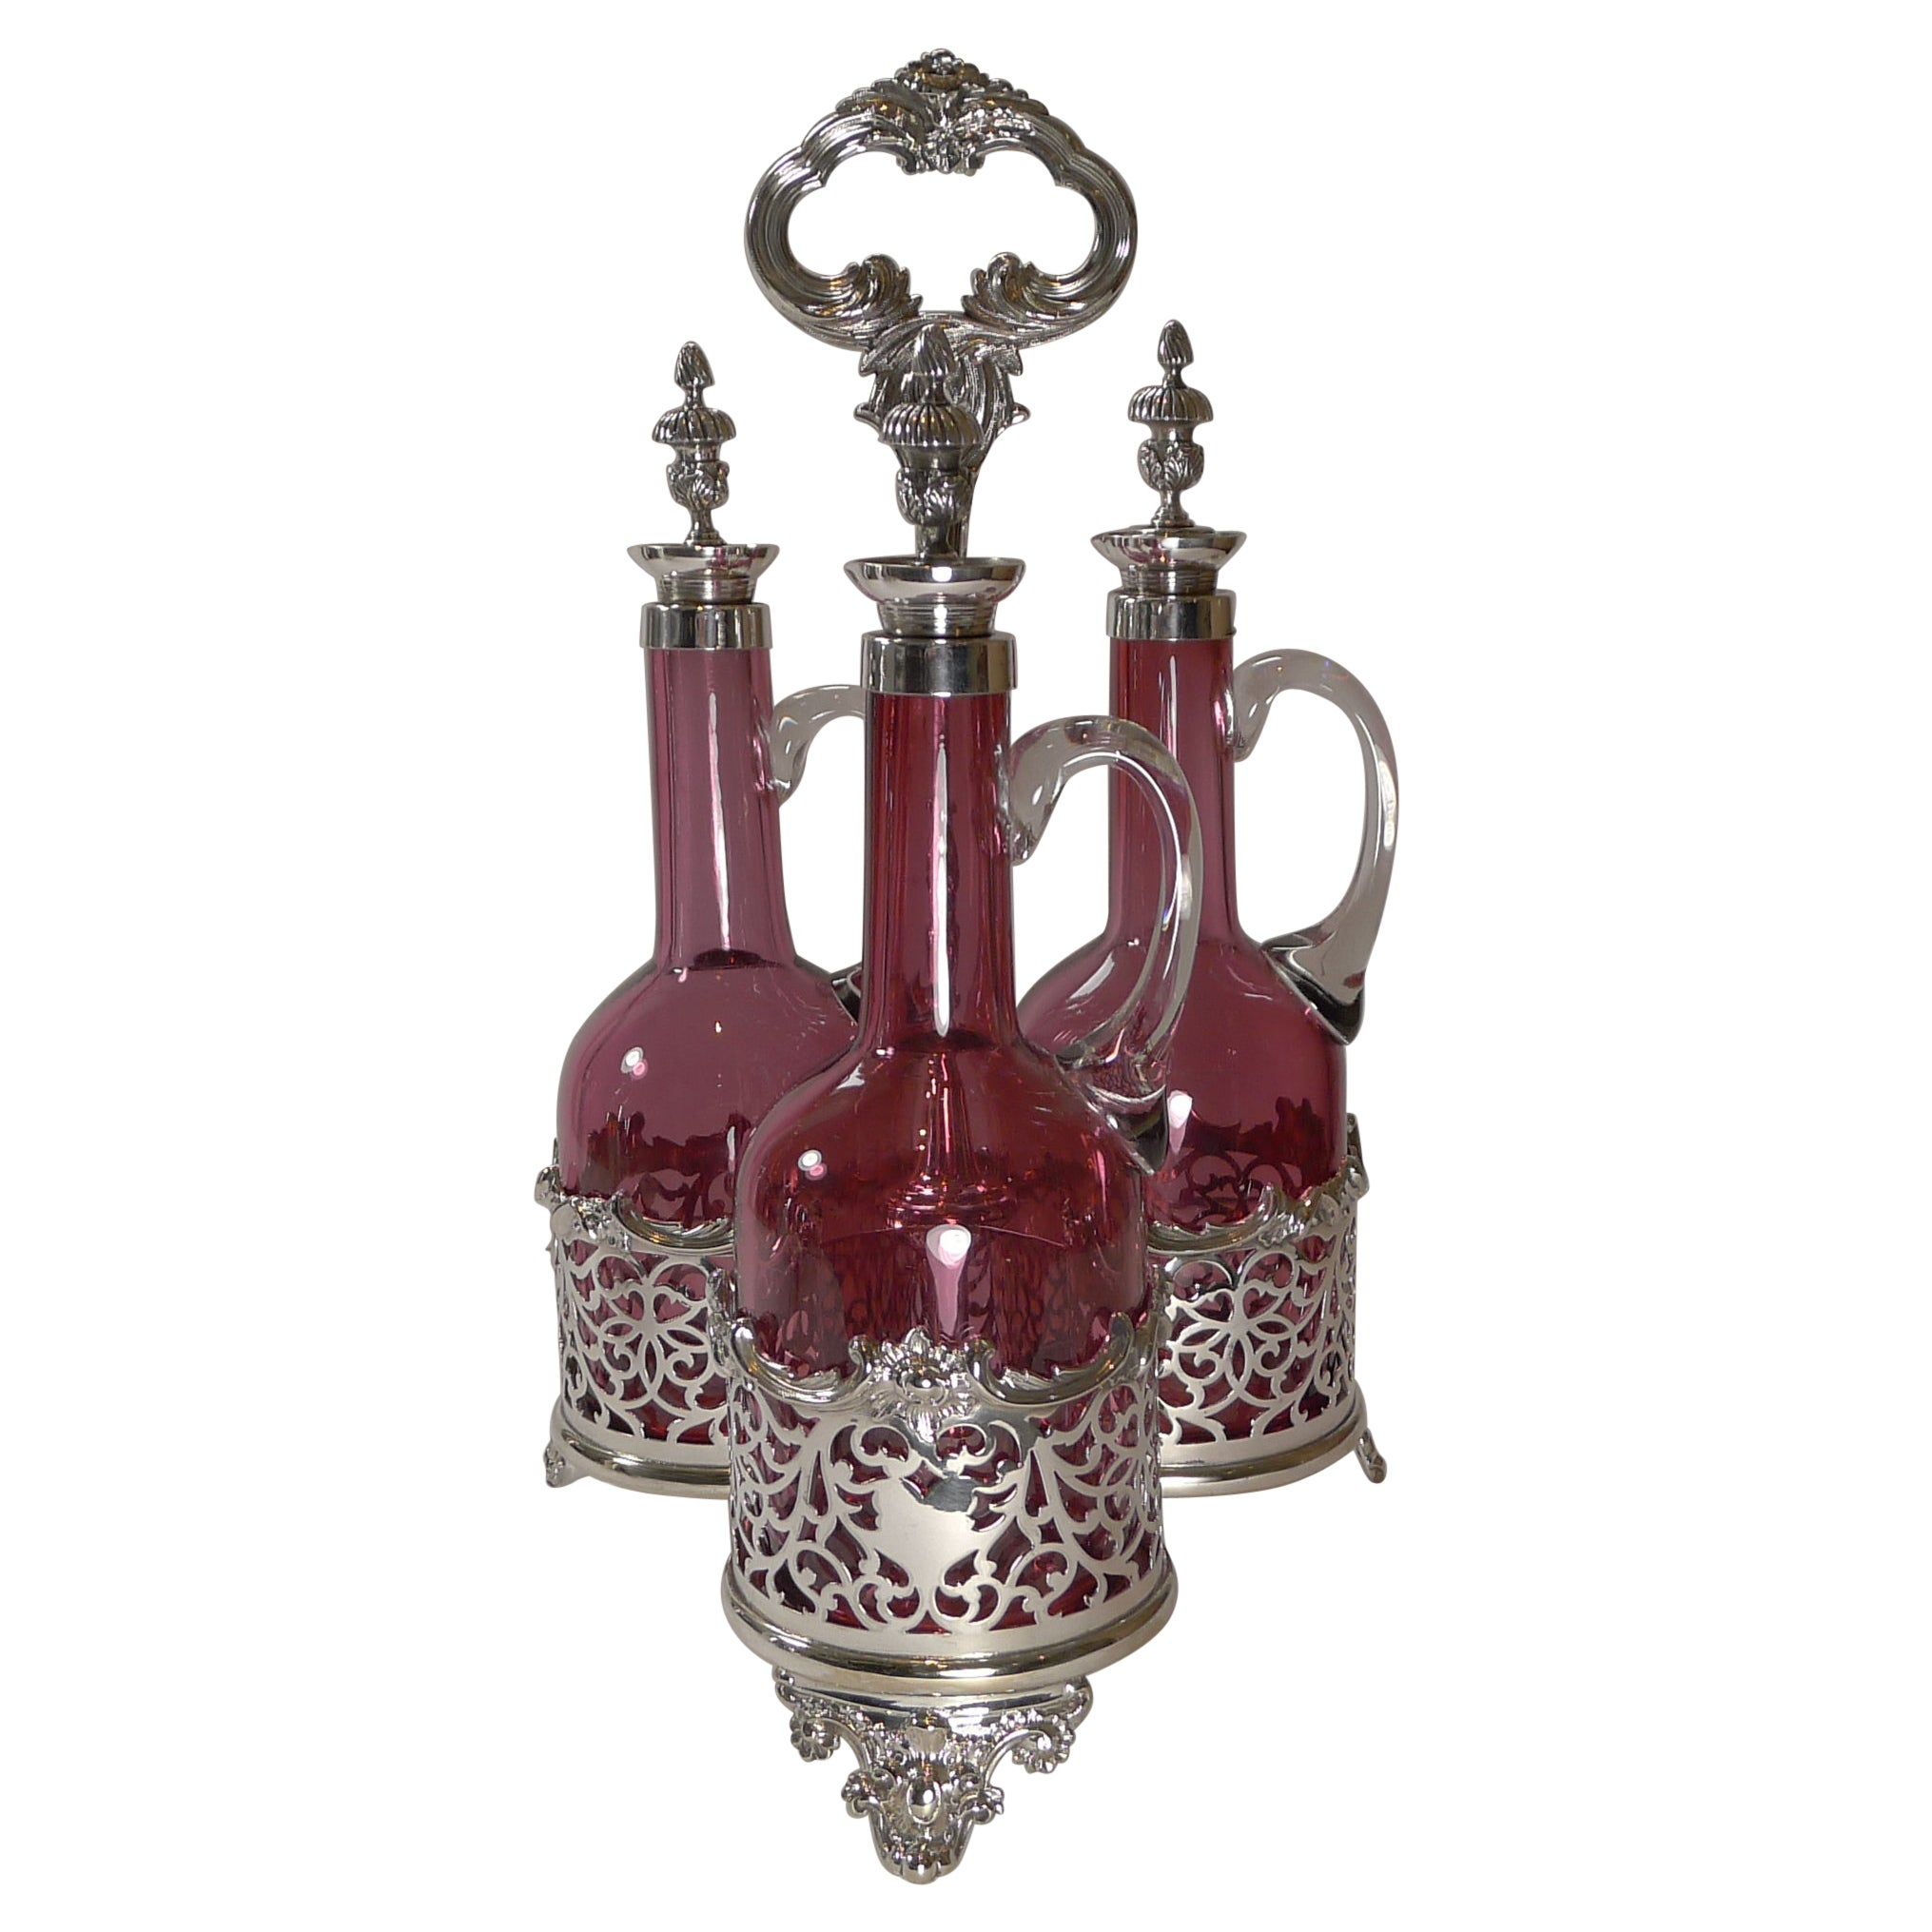 Stunning Cranberry Glass and Silver Plate Decanter Set c.1890